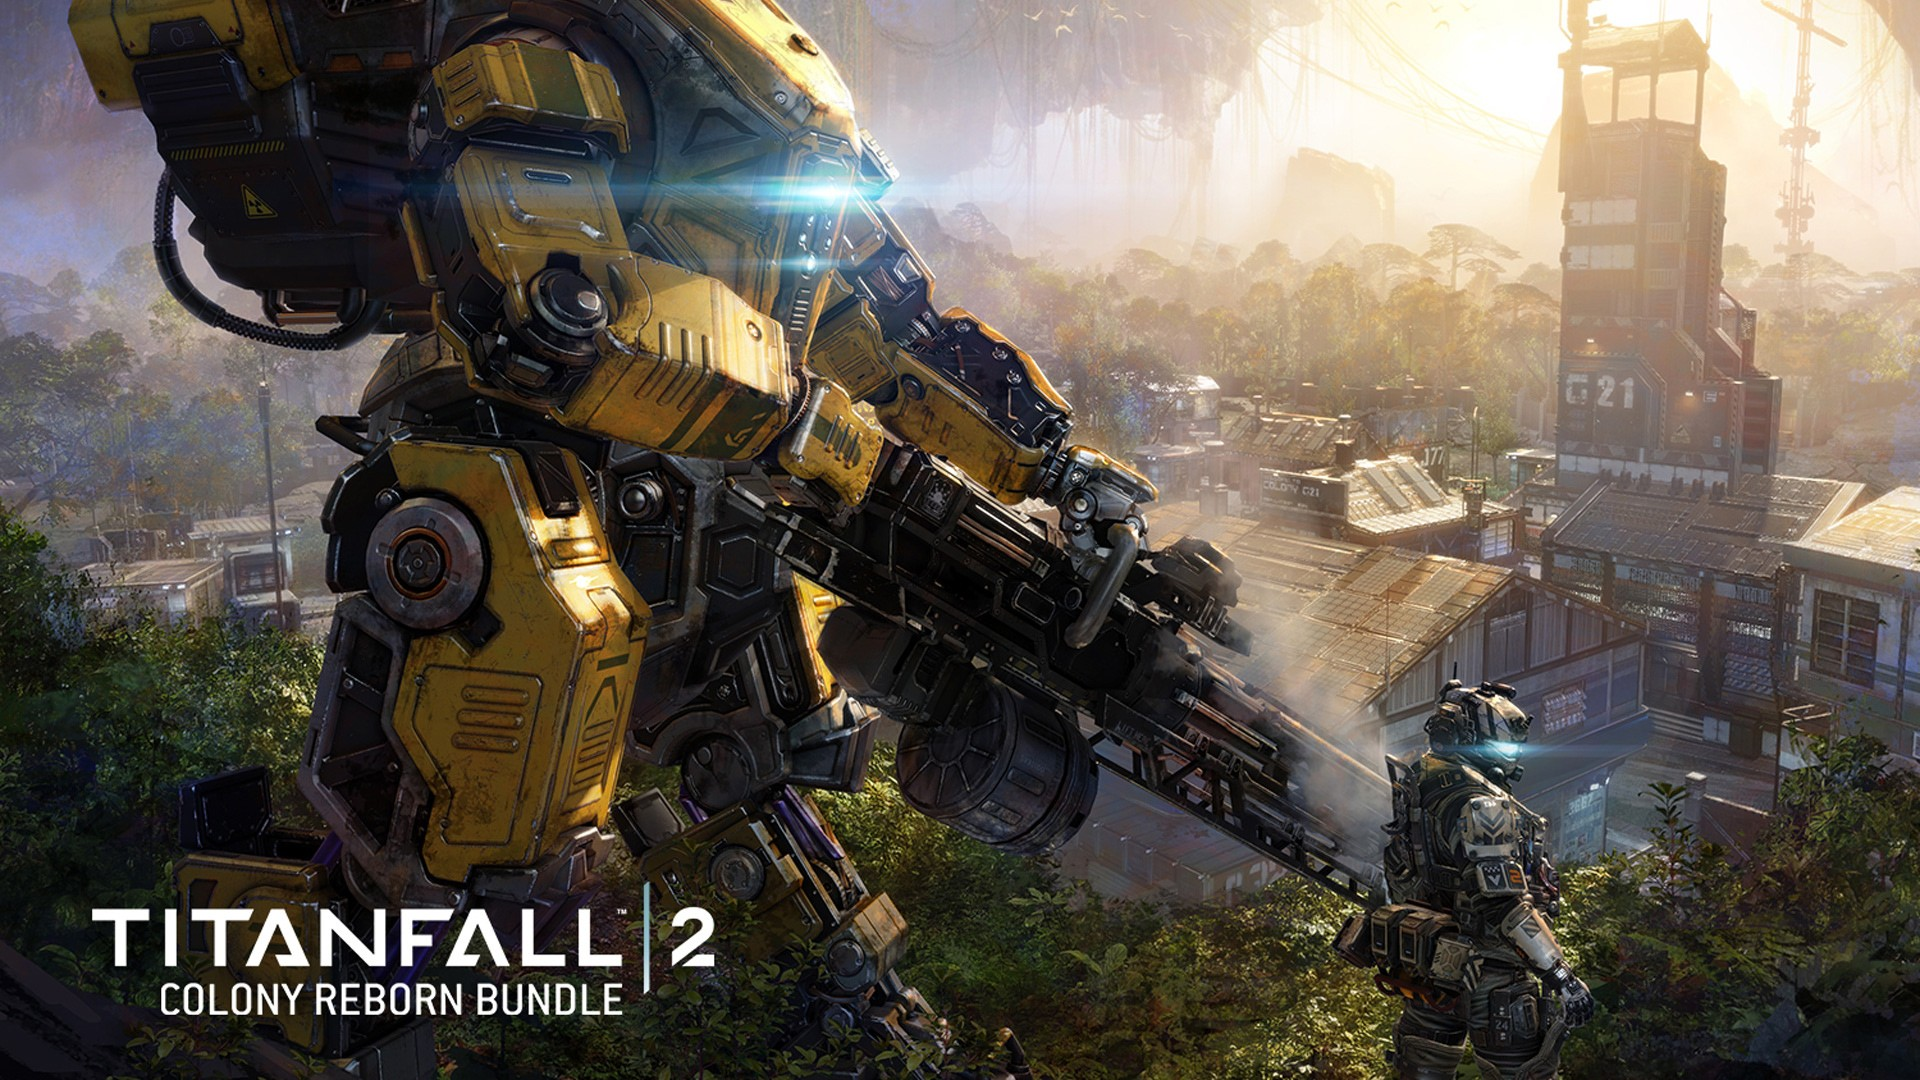 Fall Desktop Wallpaper Widescreen Titanfall 2 Colony Reborn Dlc Wallpapers Hd Wallpapers